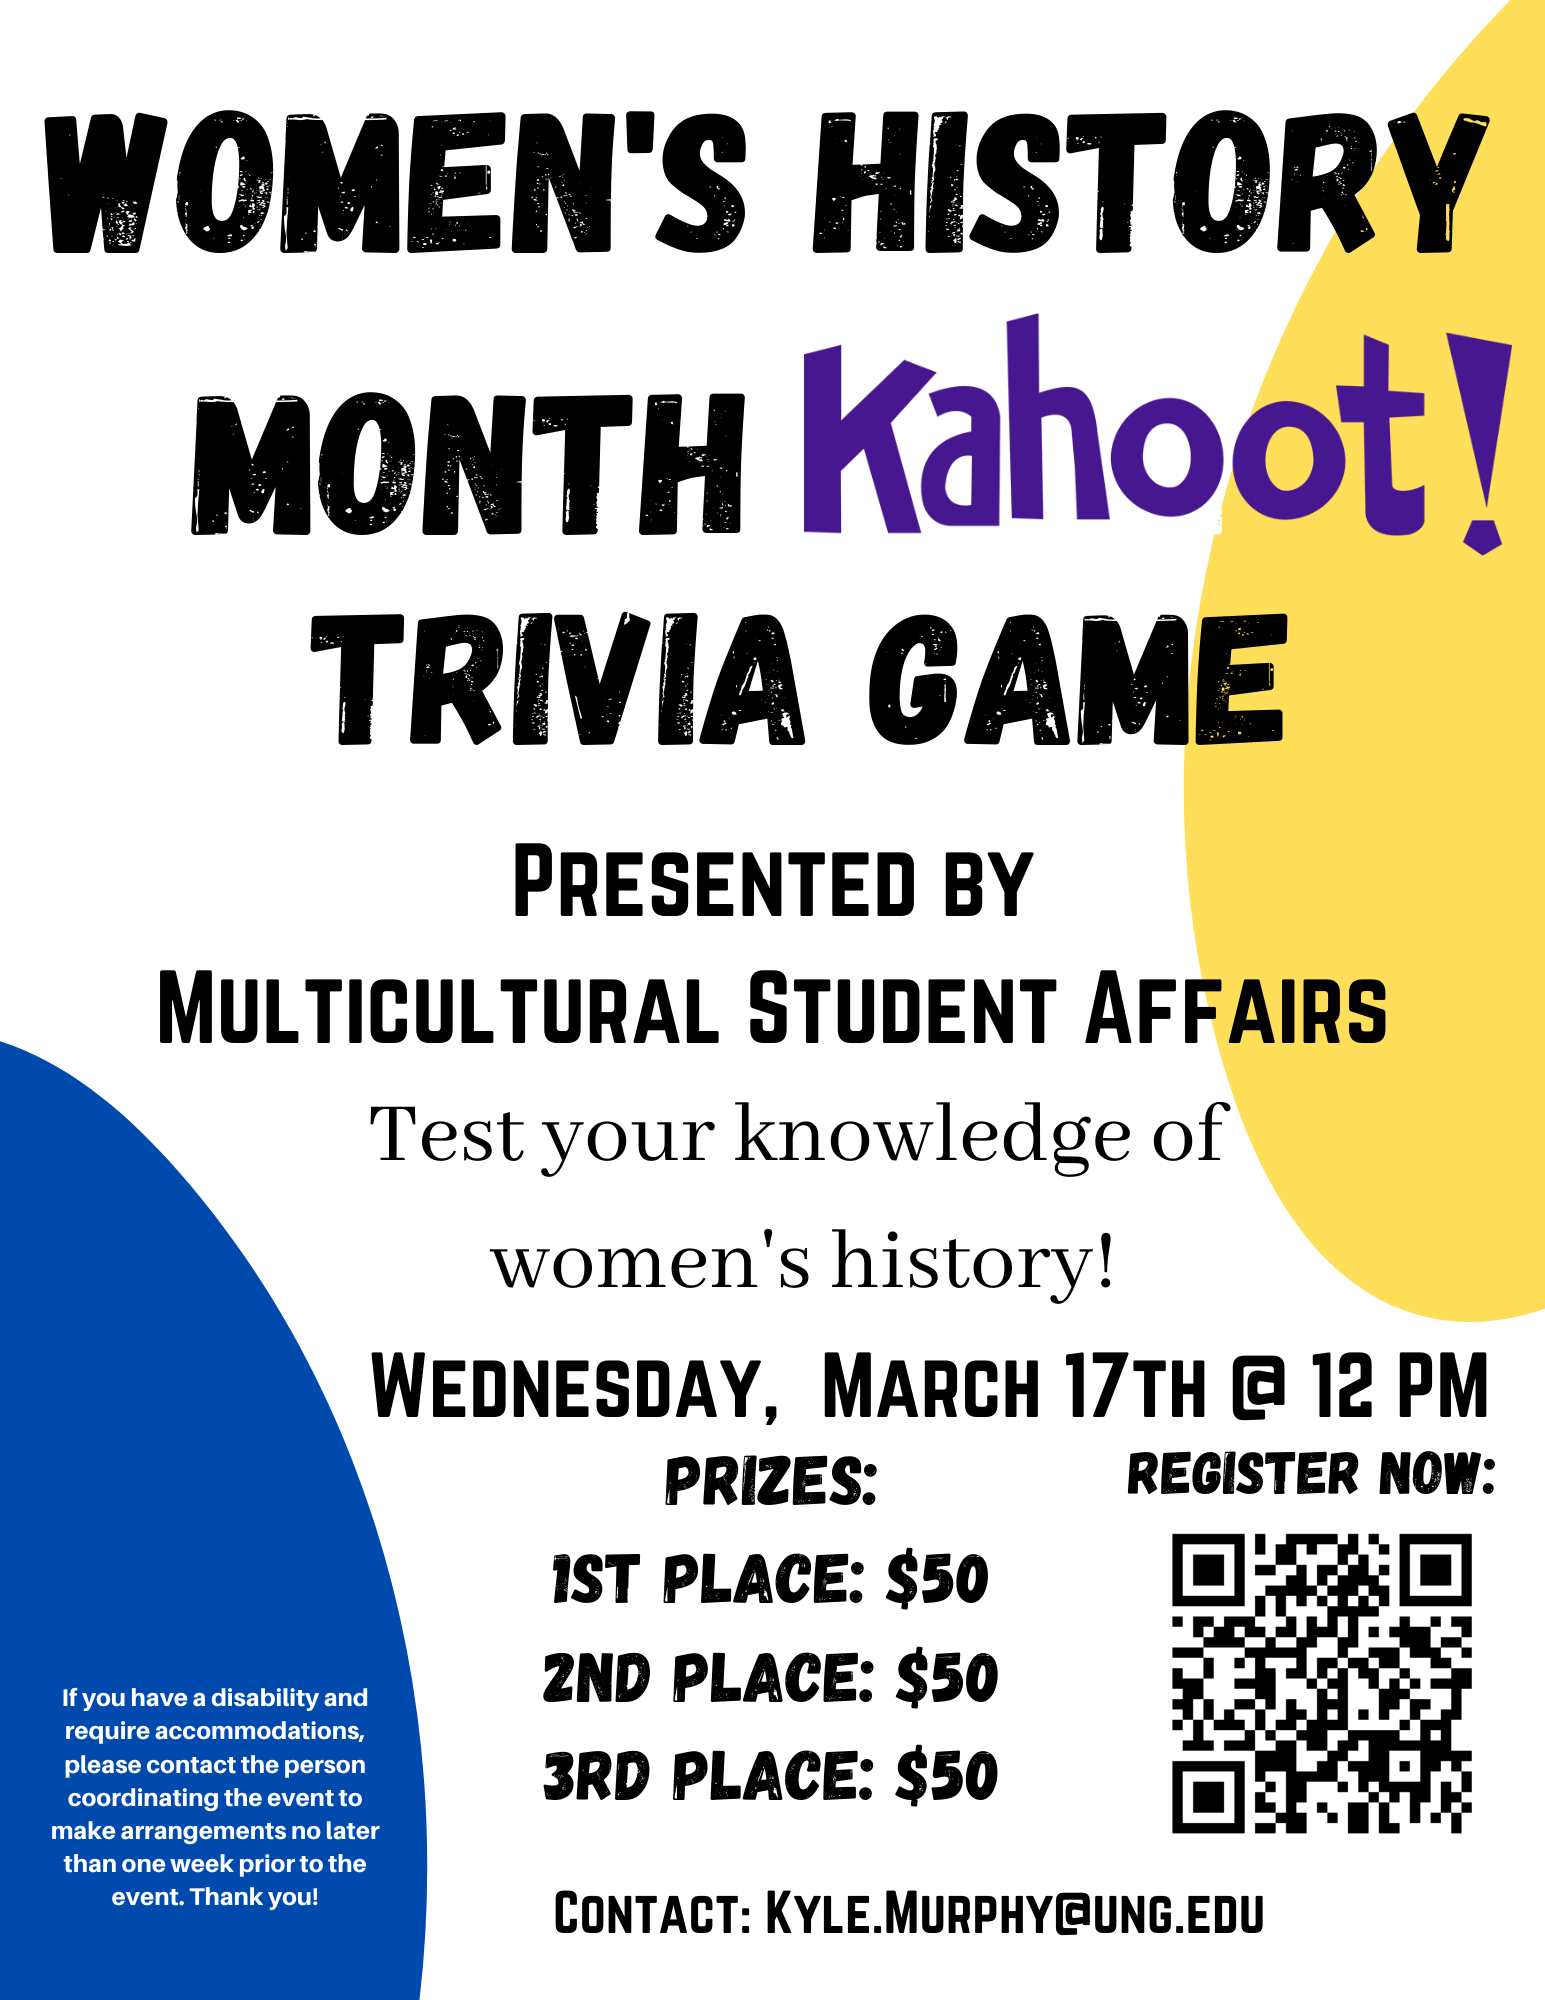 Women's History Month Kahoot! Trivia Game, Presented by: Multicultural Student Affairs. Test your knowledge of women's history! Wednesday, MArch 17th at 12 pm. Prizes: 1st place - $50, 2nd place - $50, 3rd place - $50. Contact: Kyle.Murphy@ung.edu